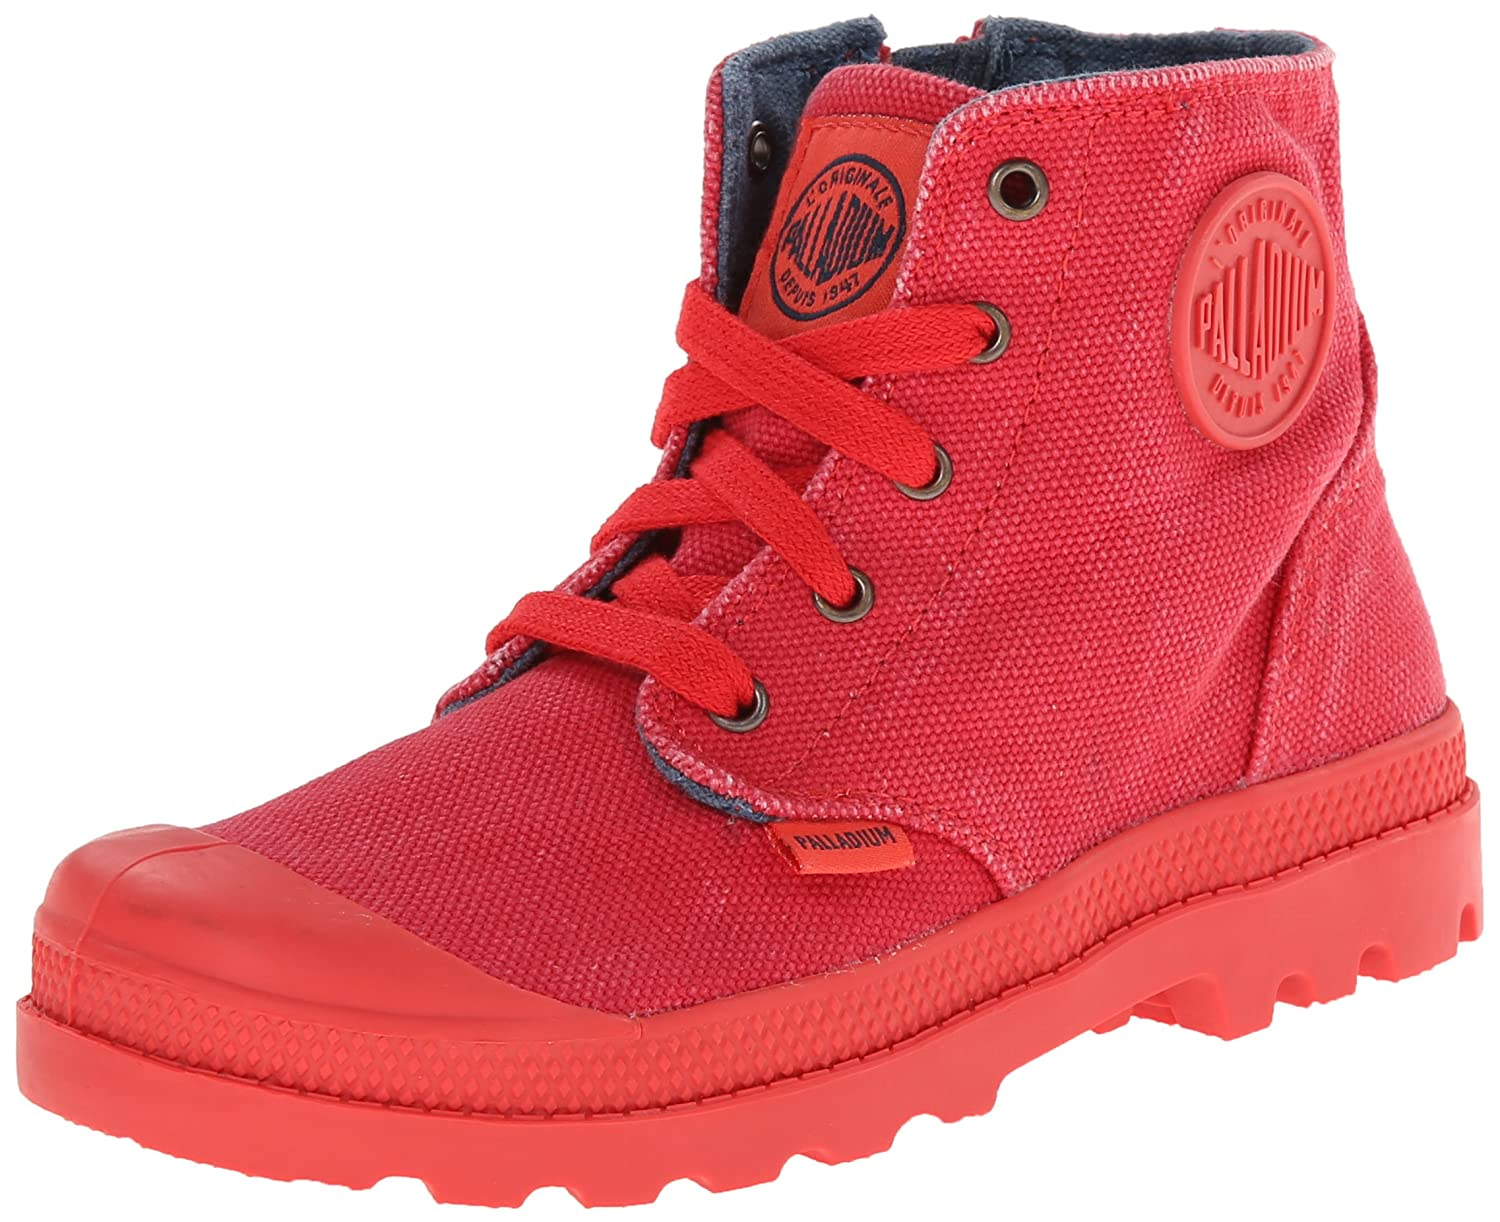 Palladium Pampa Hi Zipper Boot (Little Kid) PAMPA HI ZIPPER - K